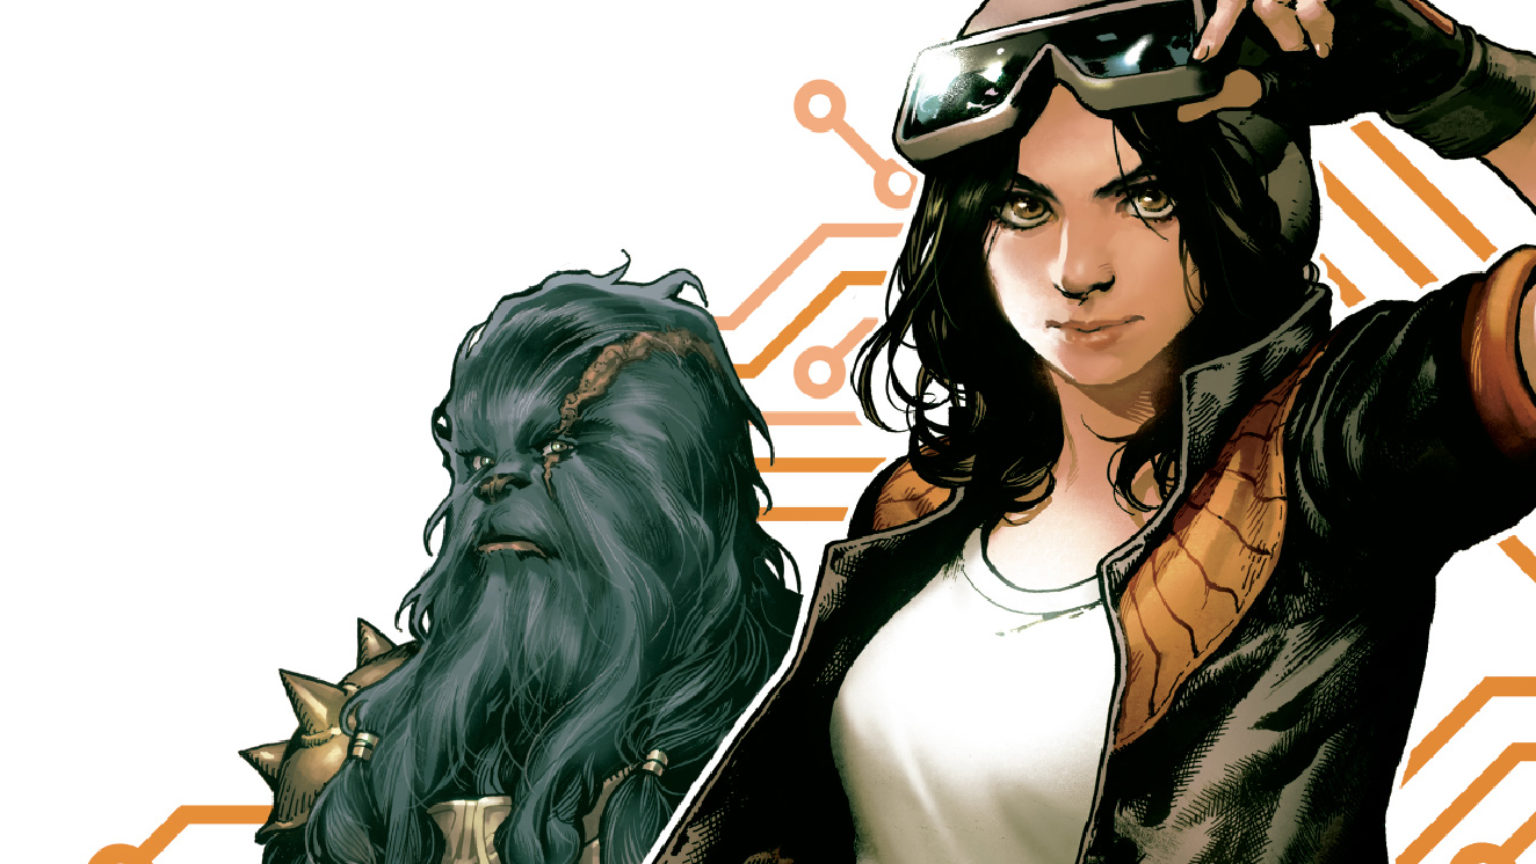 doctor-aphra-1-cover-1536x864-258896852796